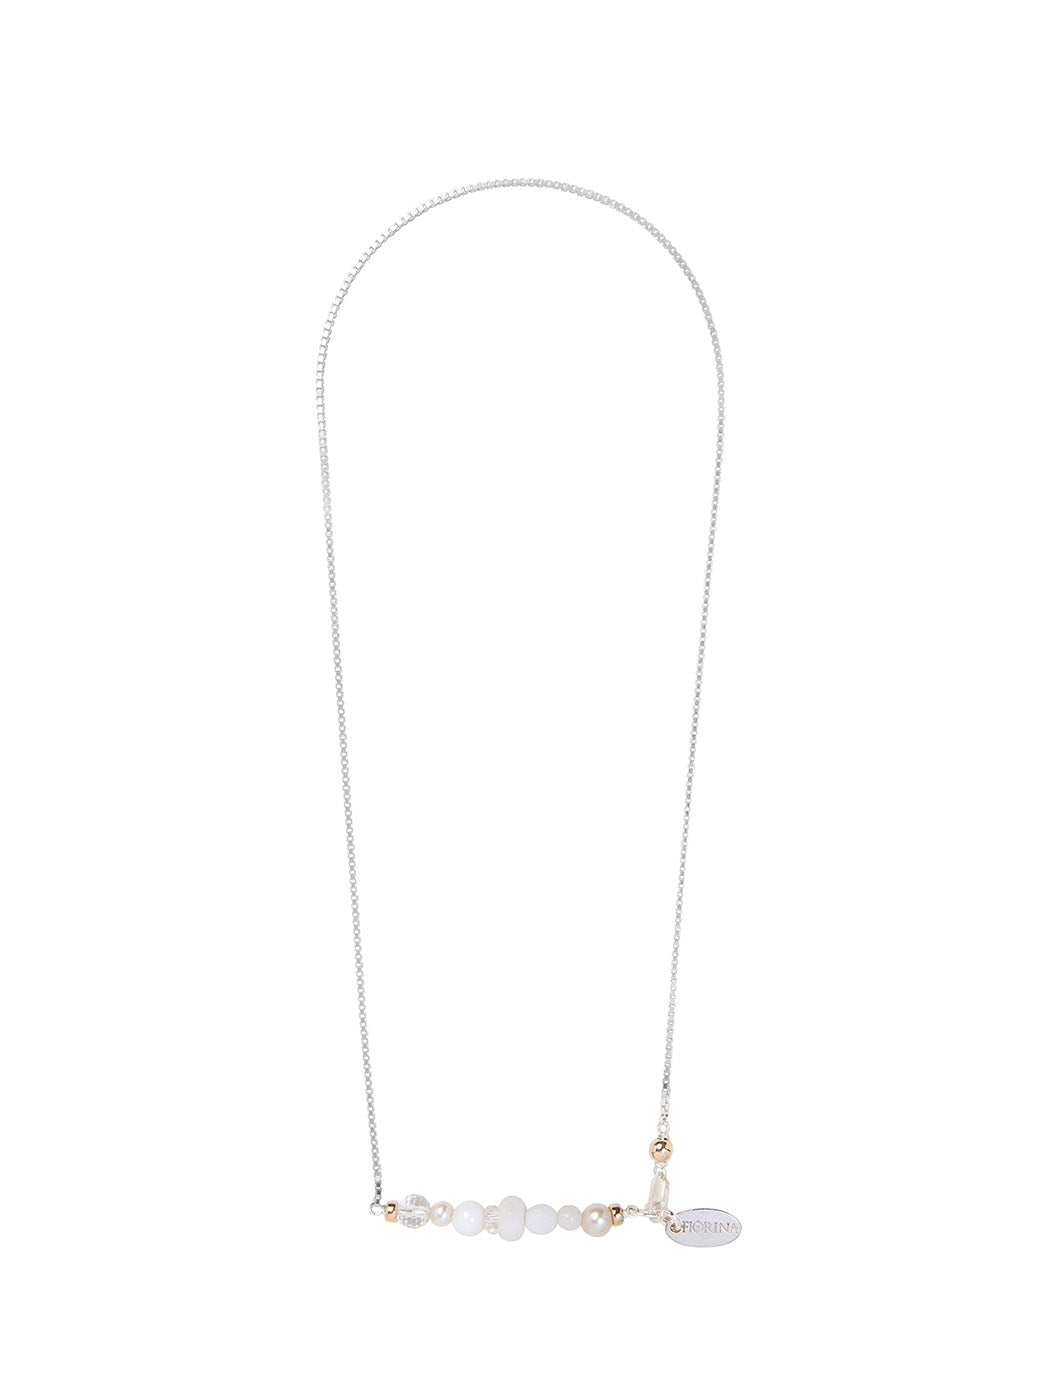 Fiorina Jewellery Ombre Necklace White Stones